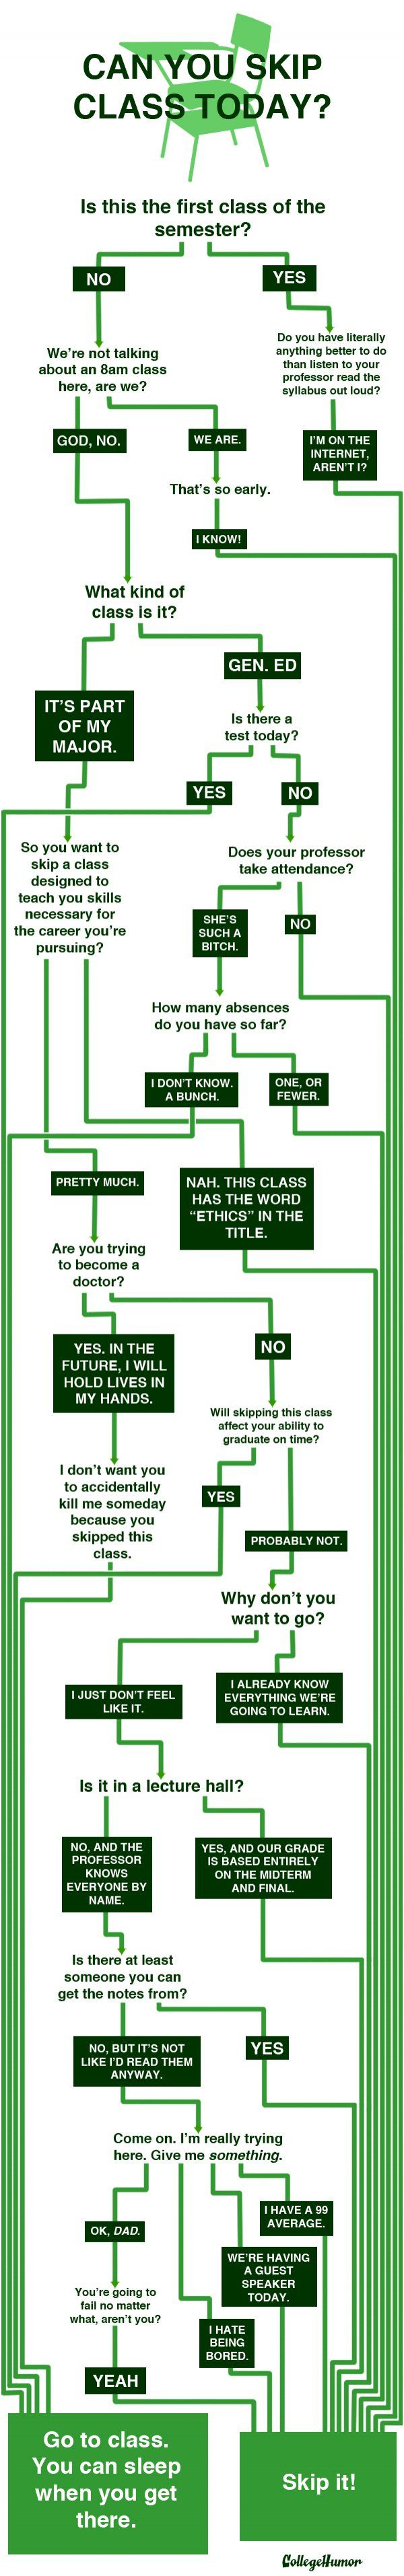 """Flowchart: Can You Skip Class Today?"" by Kevin Corrigan"